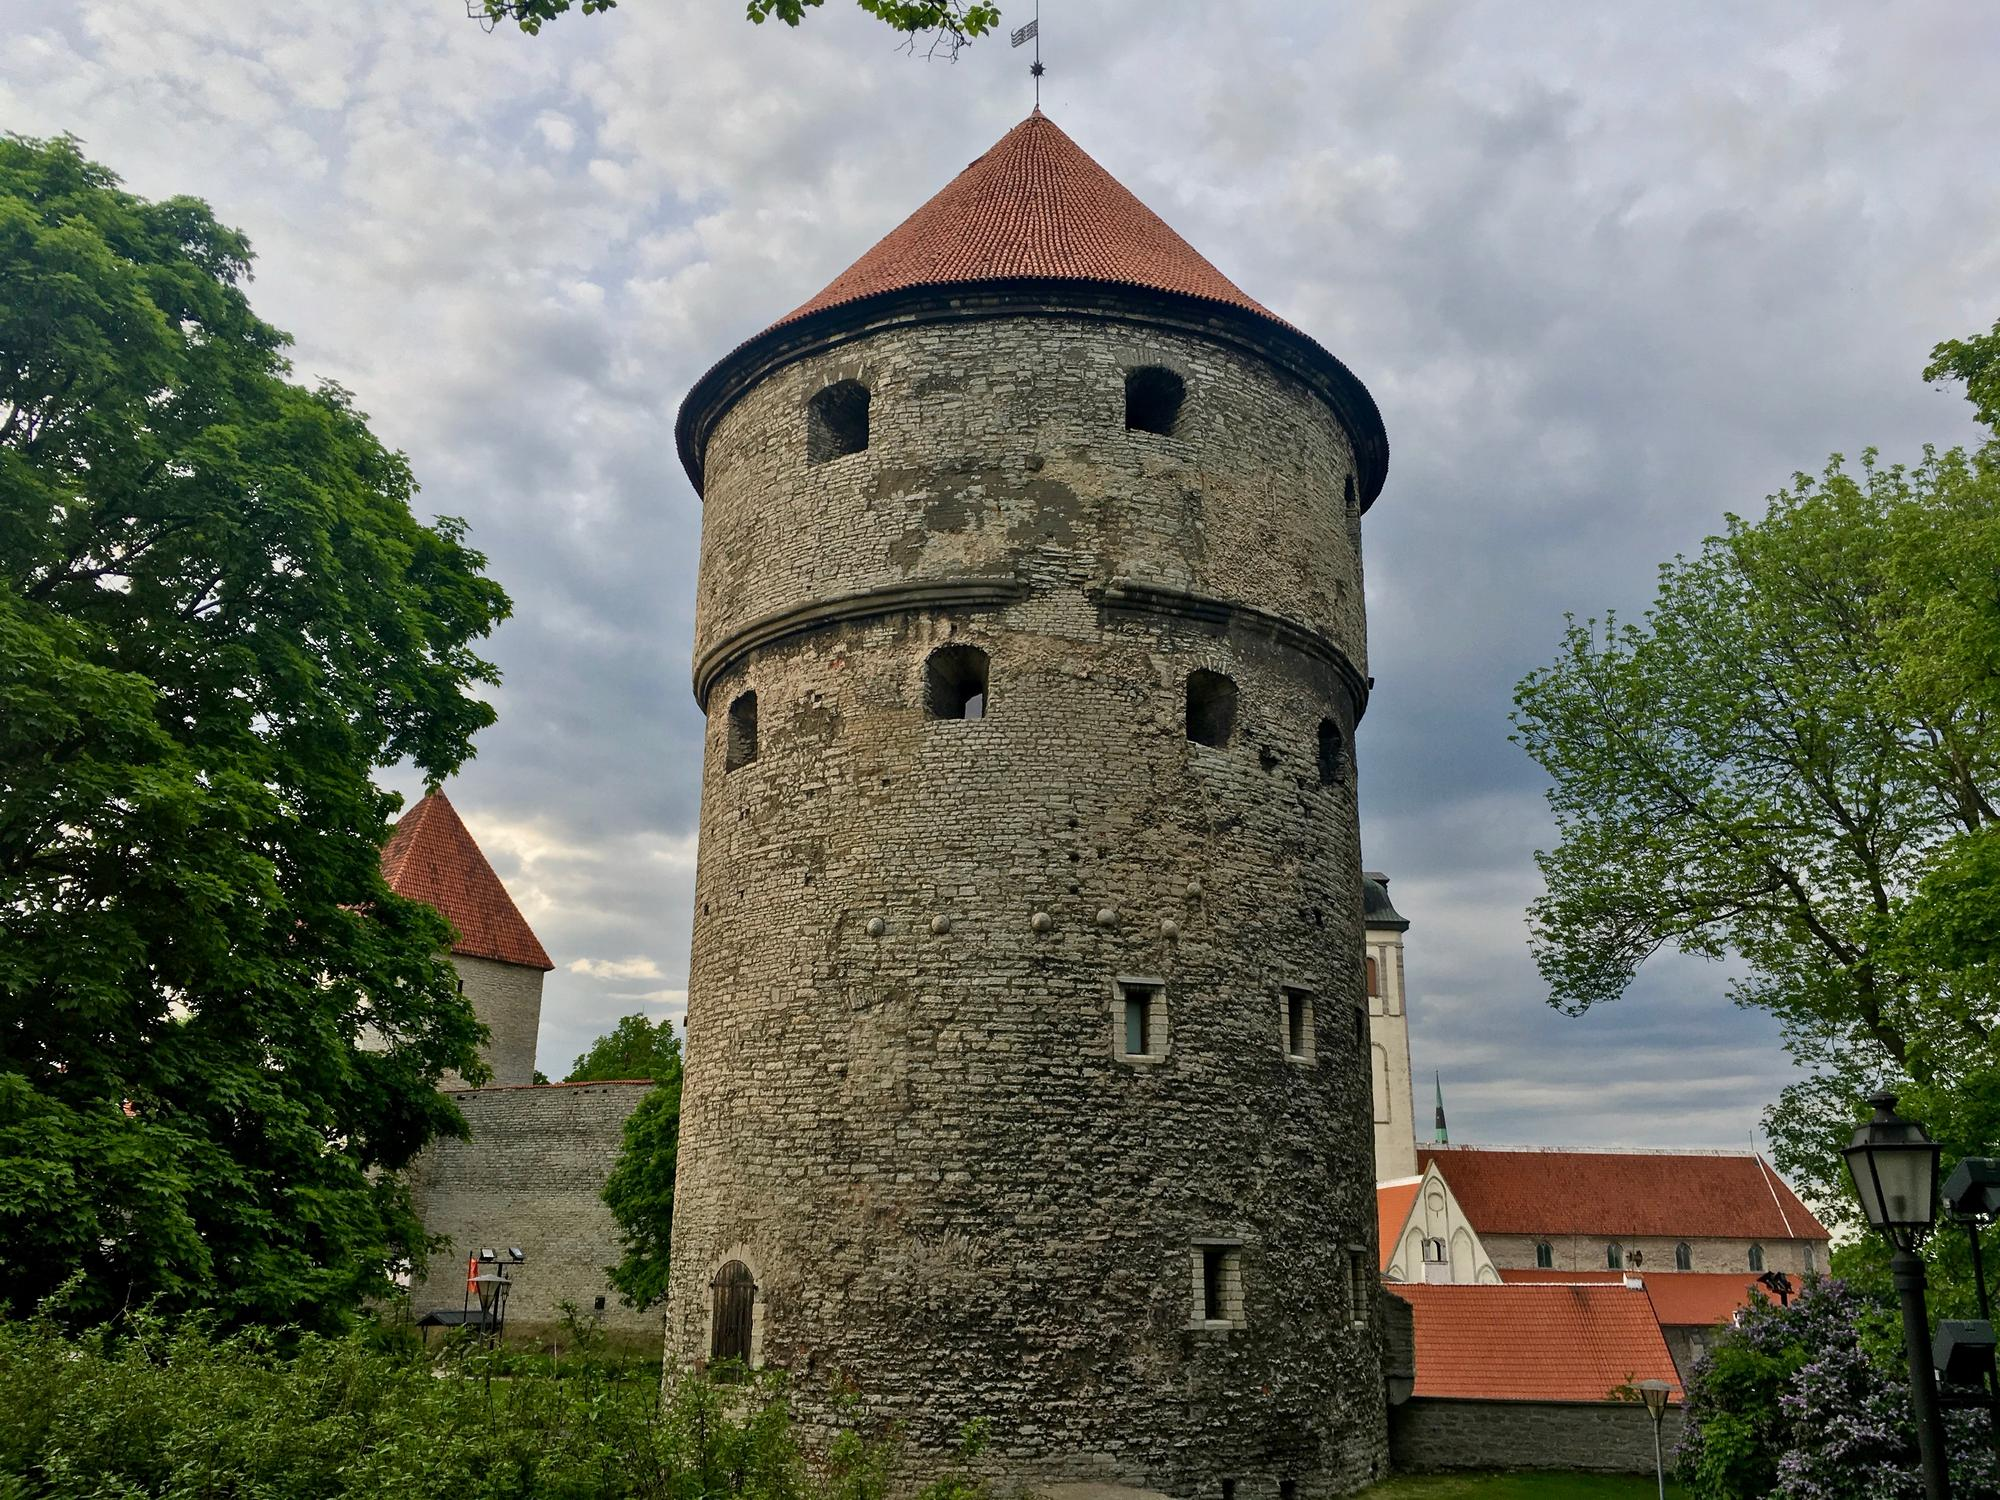 🇪🇪 Tallinn, Estonia, may 2018.